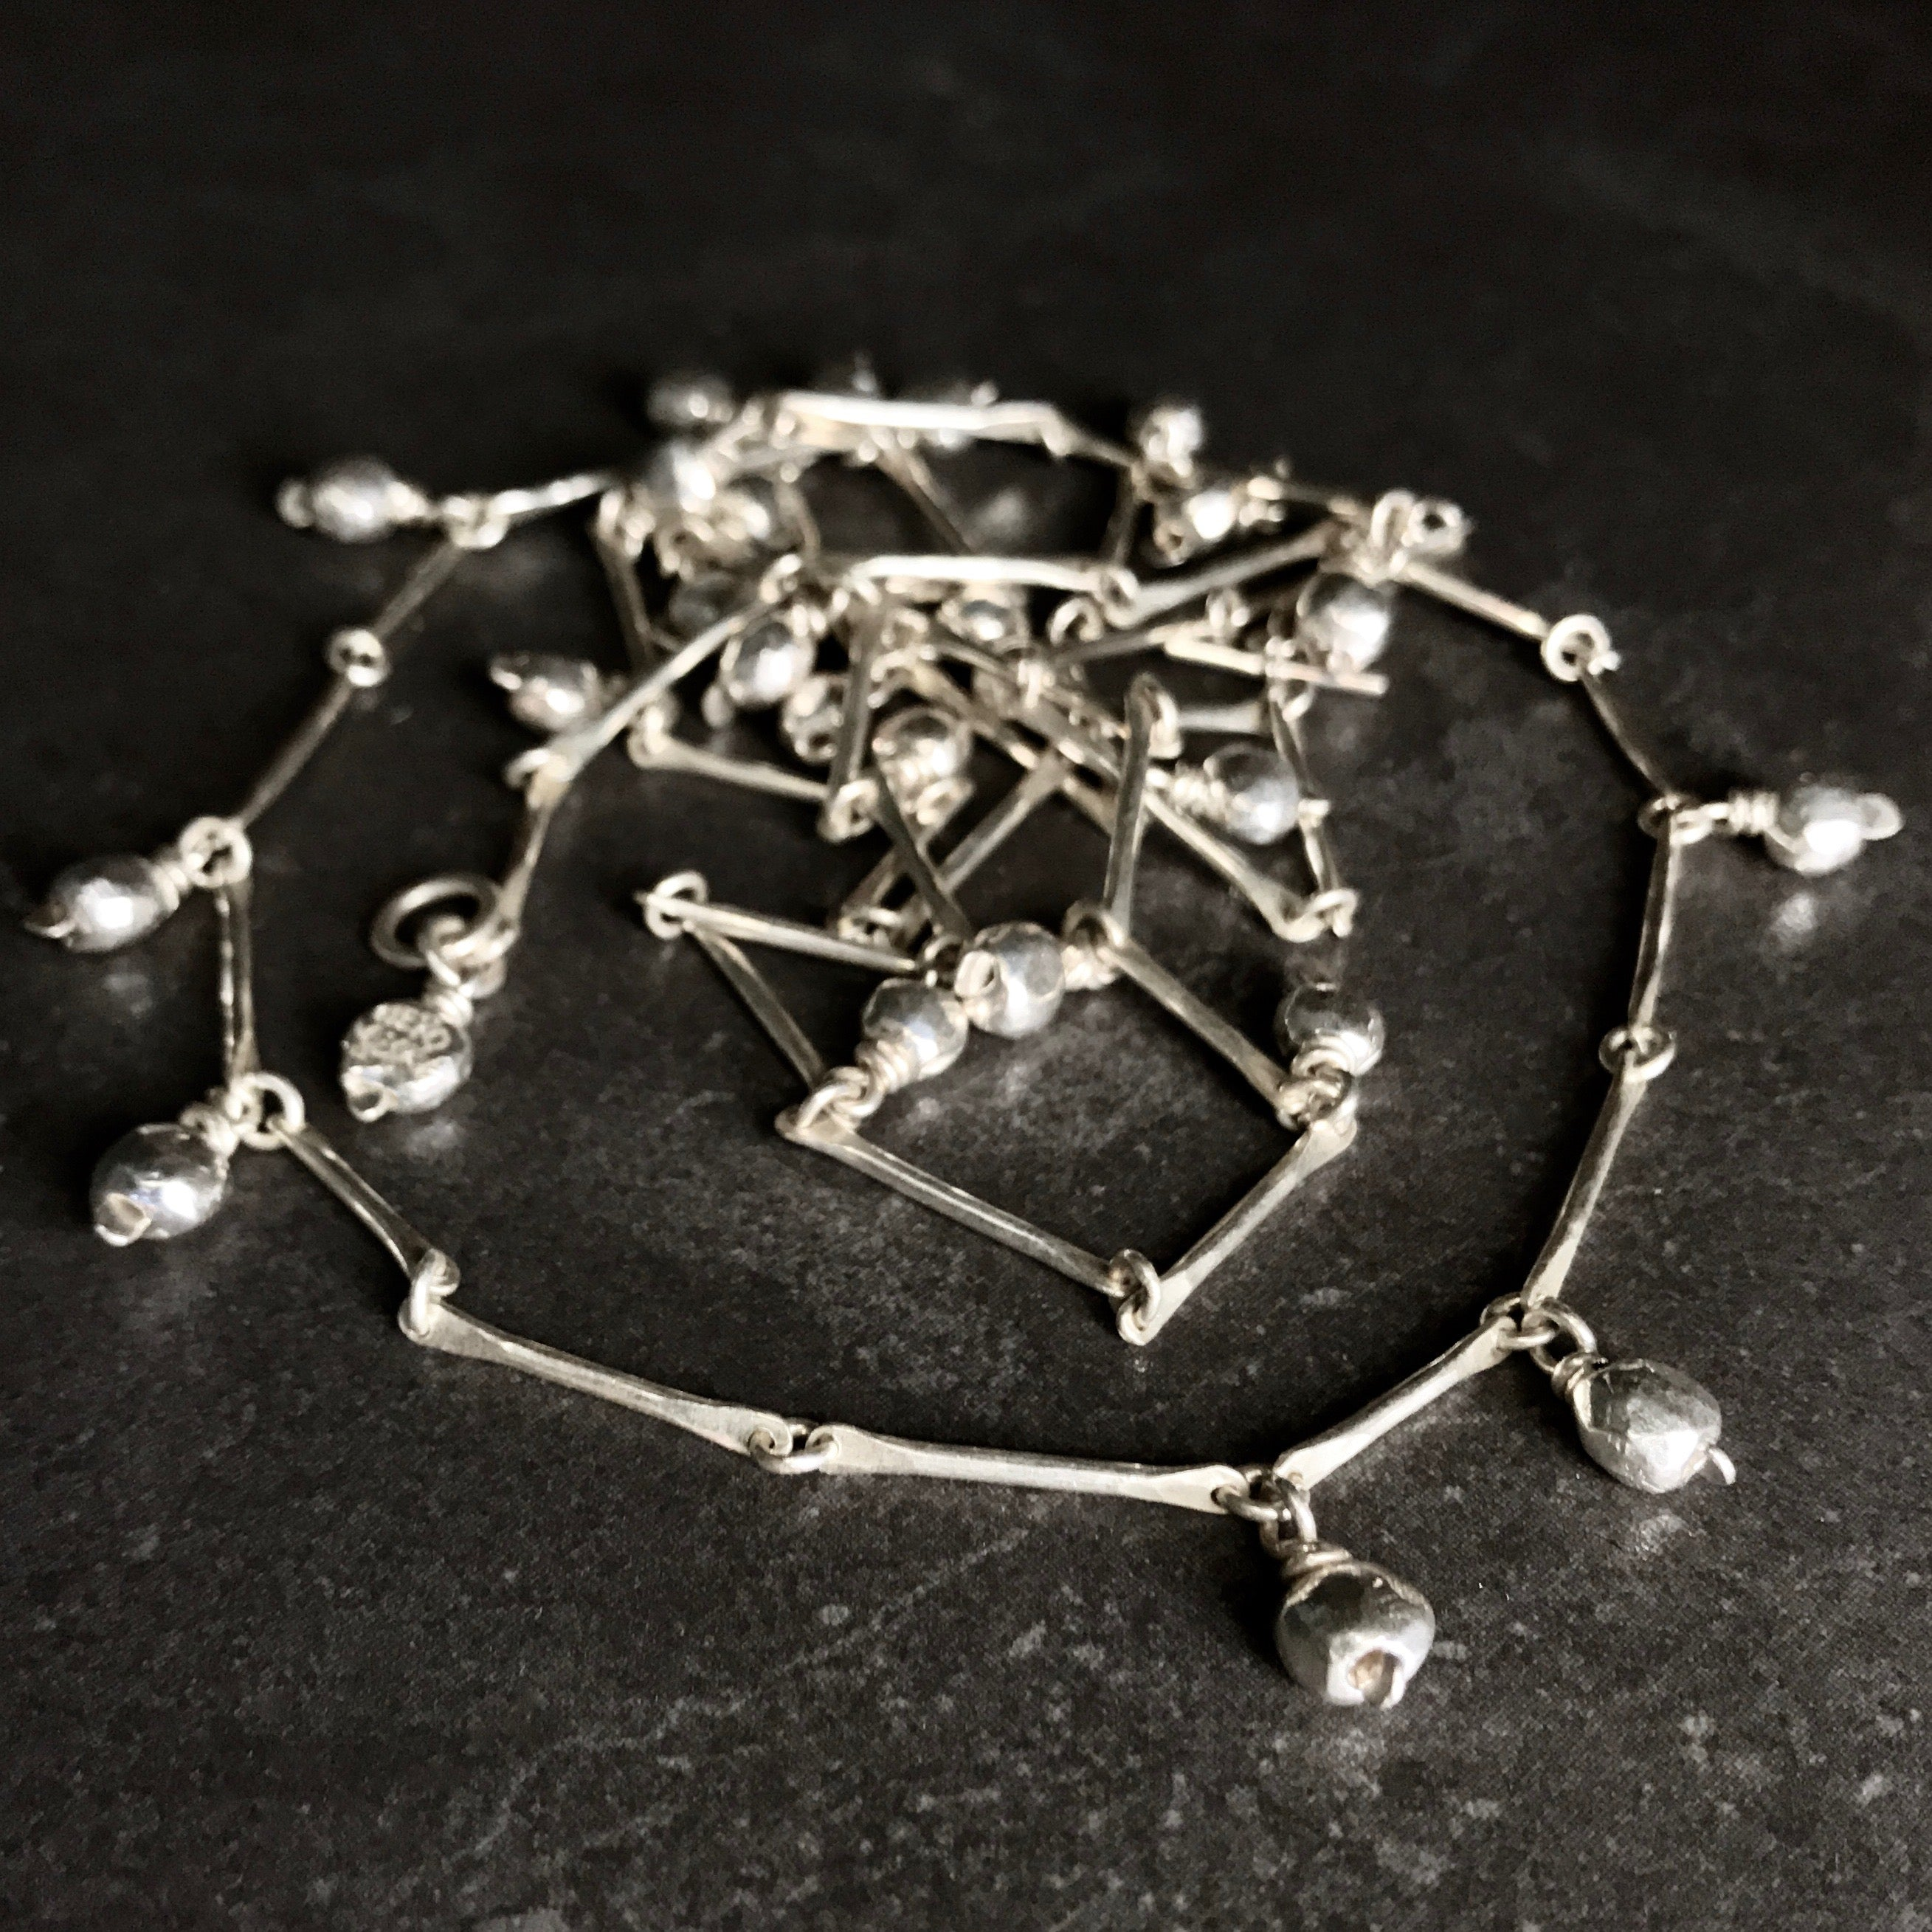 PICOLO2201 Necklace  by herosisters - Luxury handmade silver jewelry and accessories